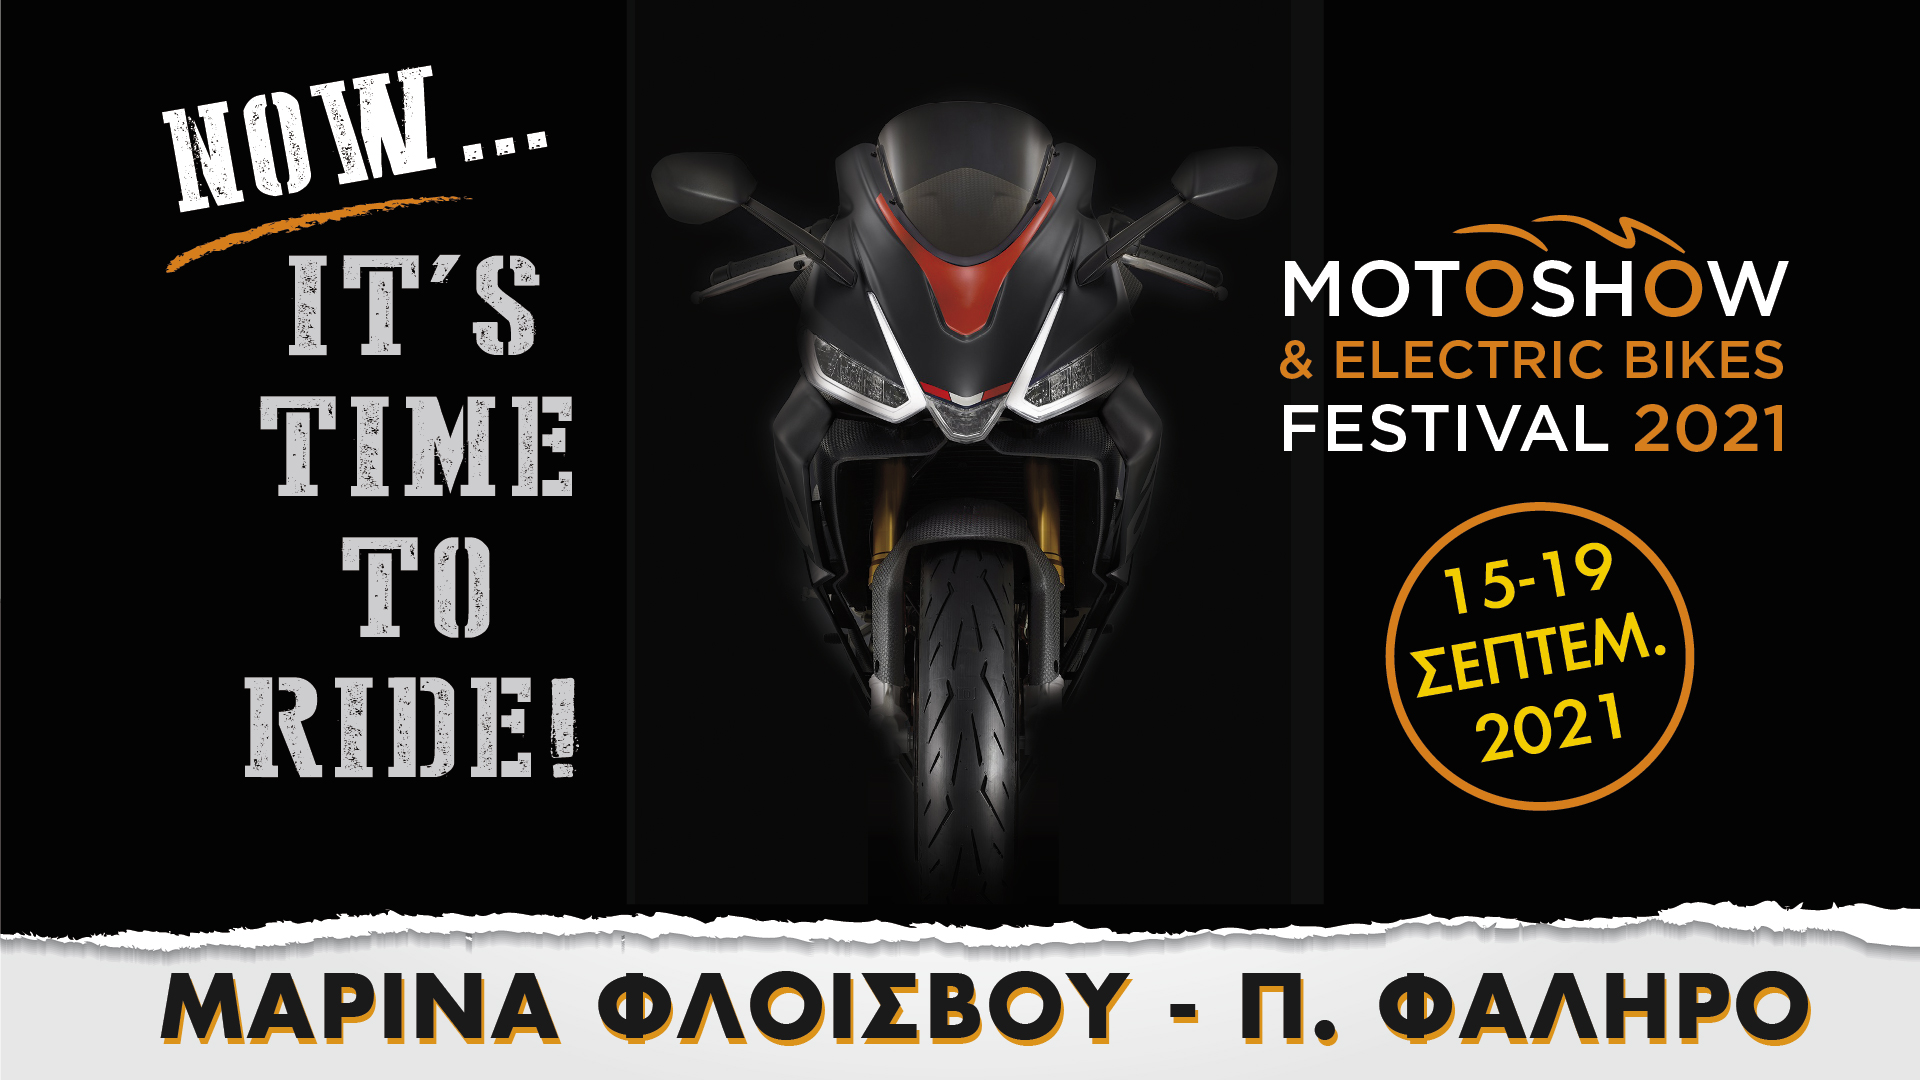 MOTOSHOW AND ELECTRIC BIKES FESTIVAL 2021